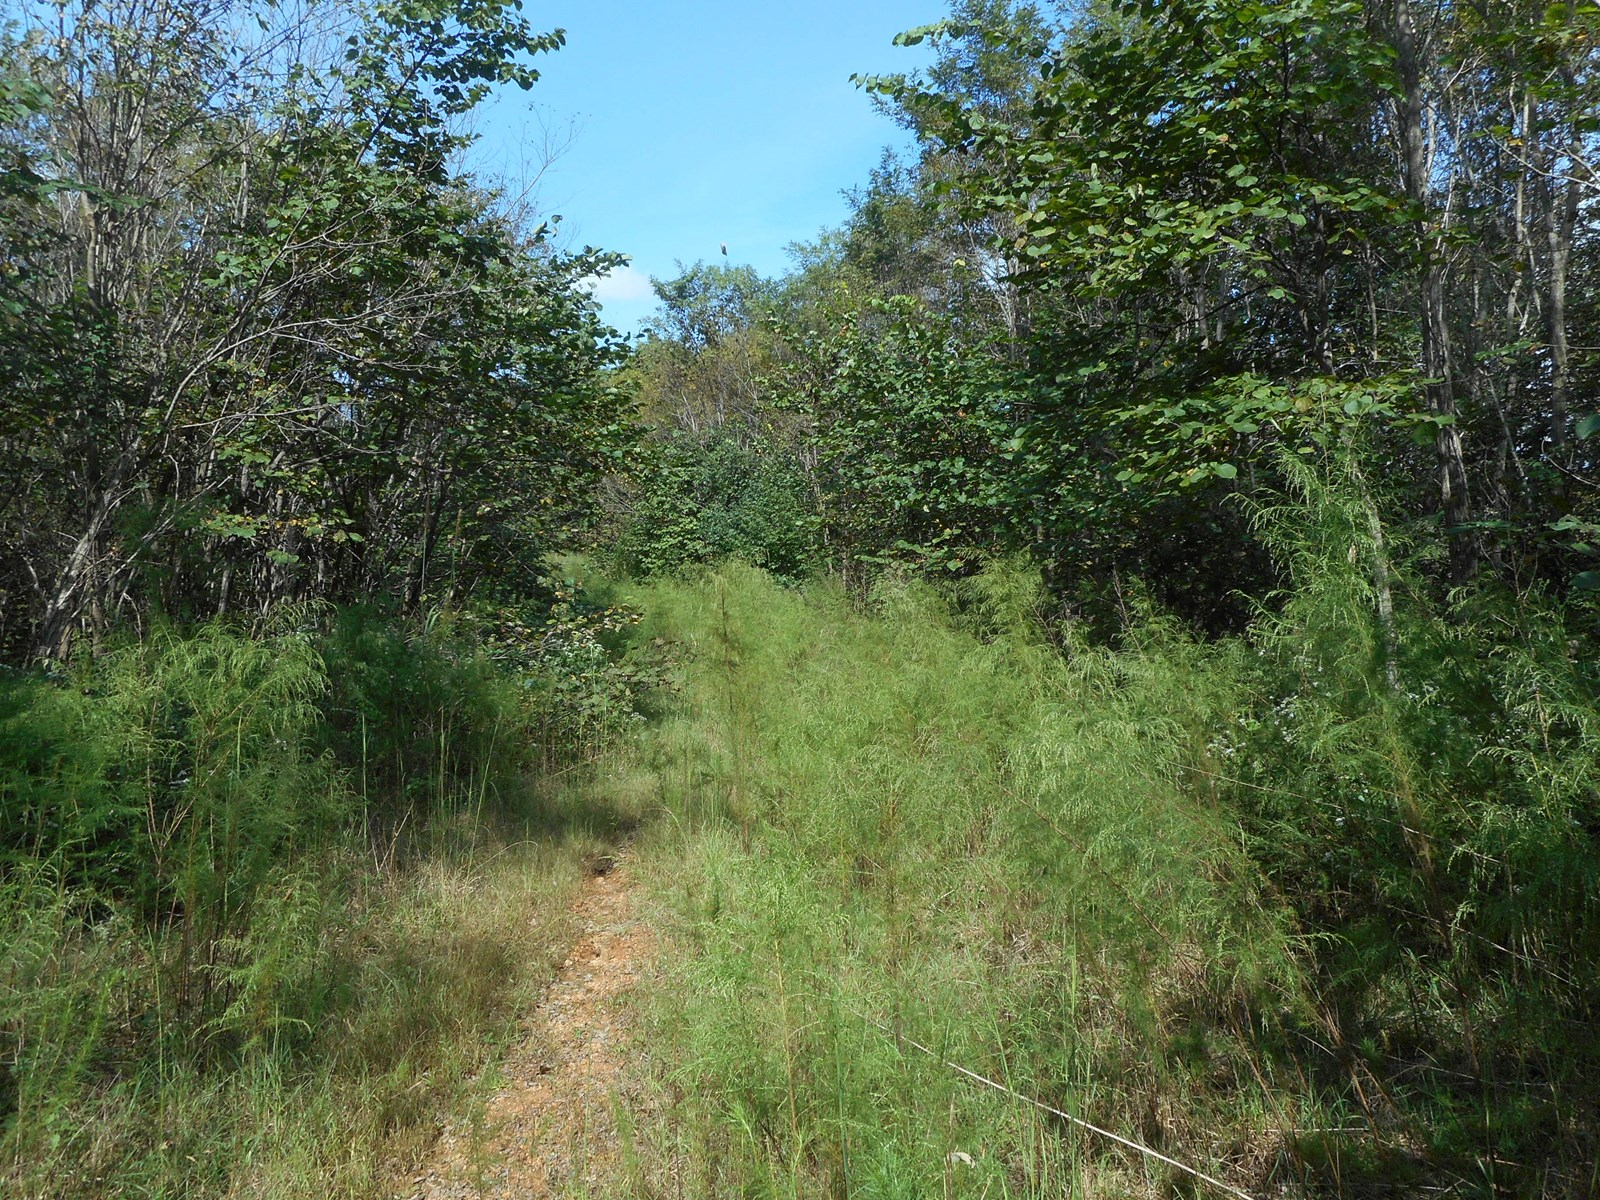 RURAL TENNESSEE PROPERTY FOR SALE!